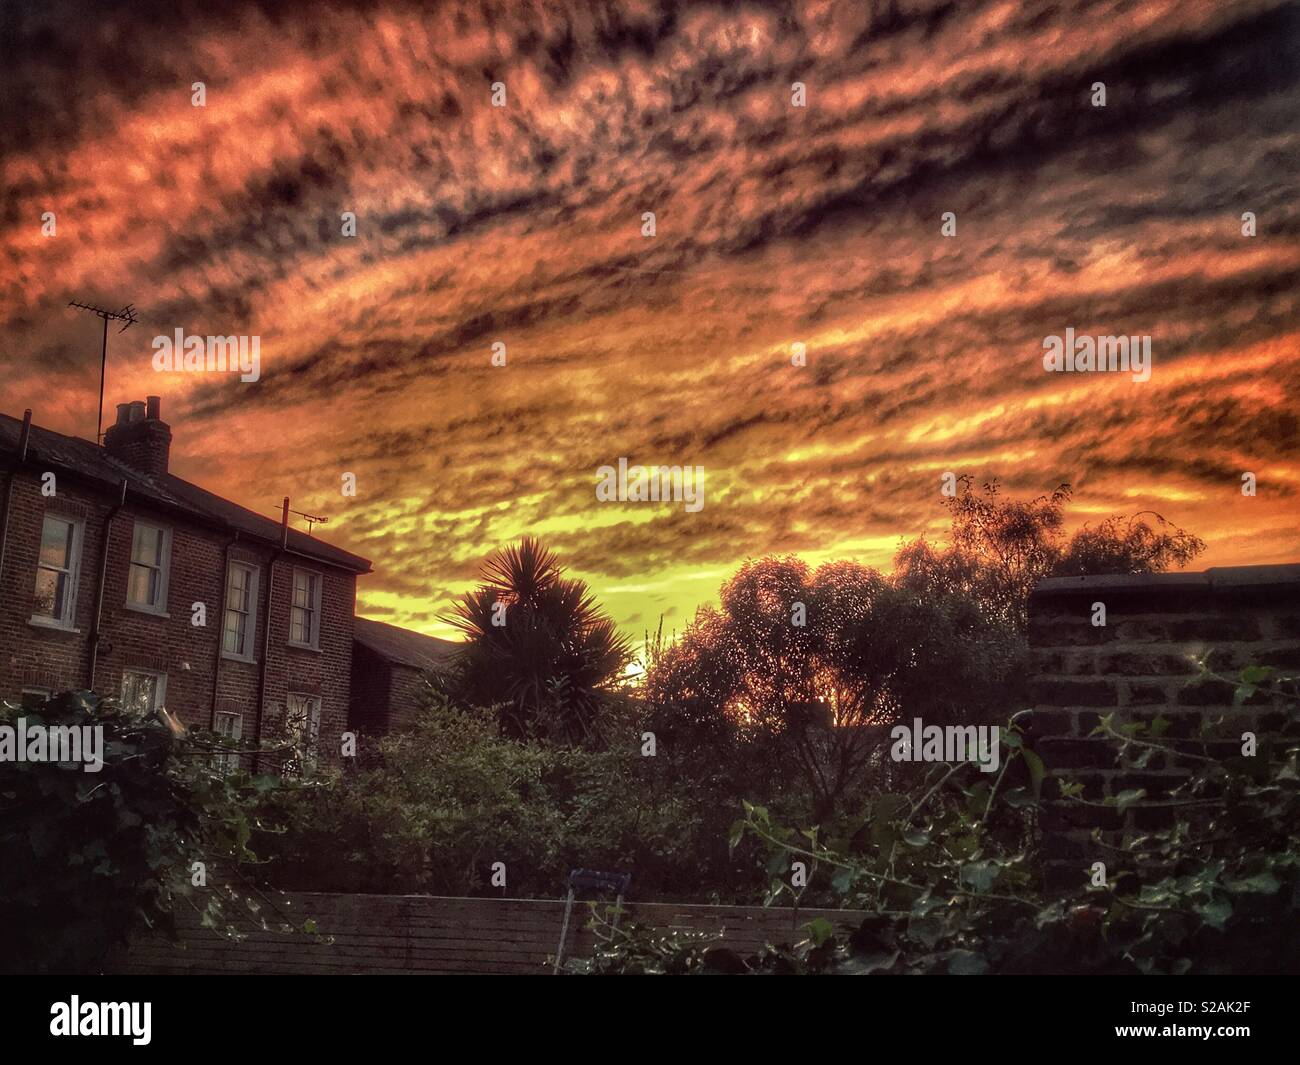 Sunset over East Finchley, North London. - Stock Image